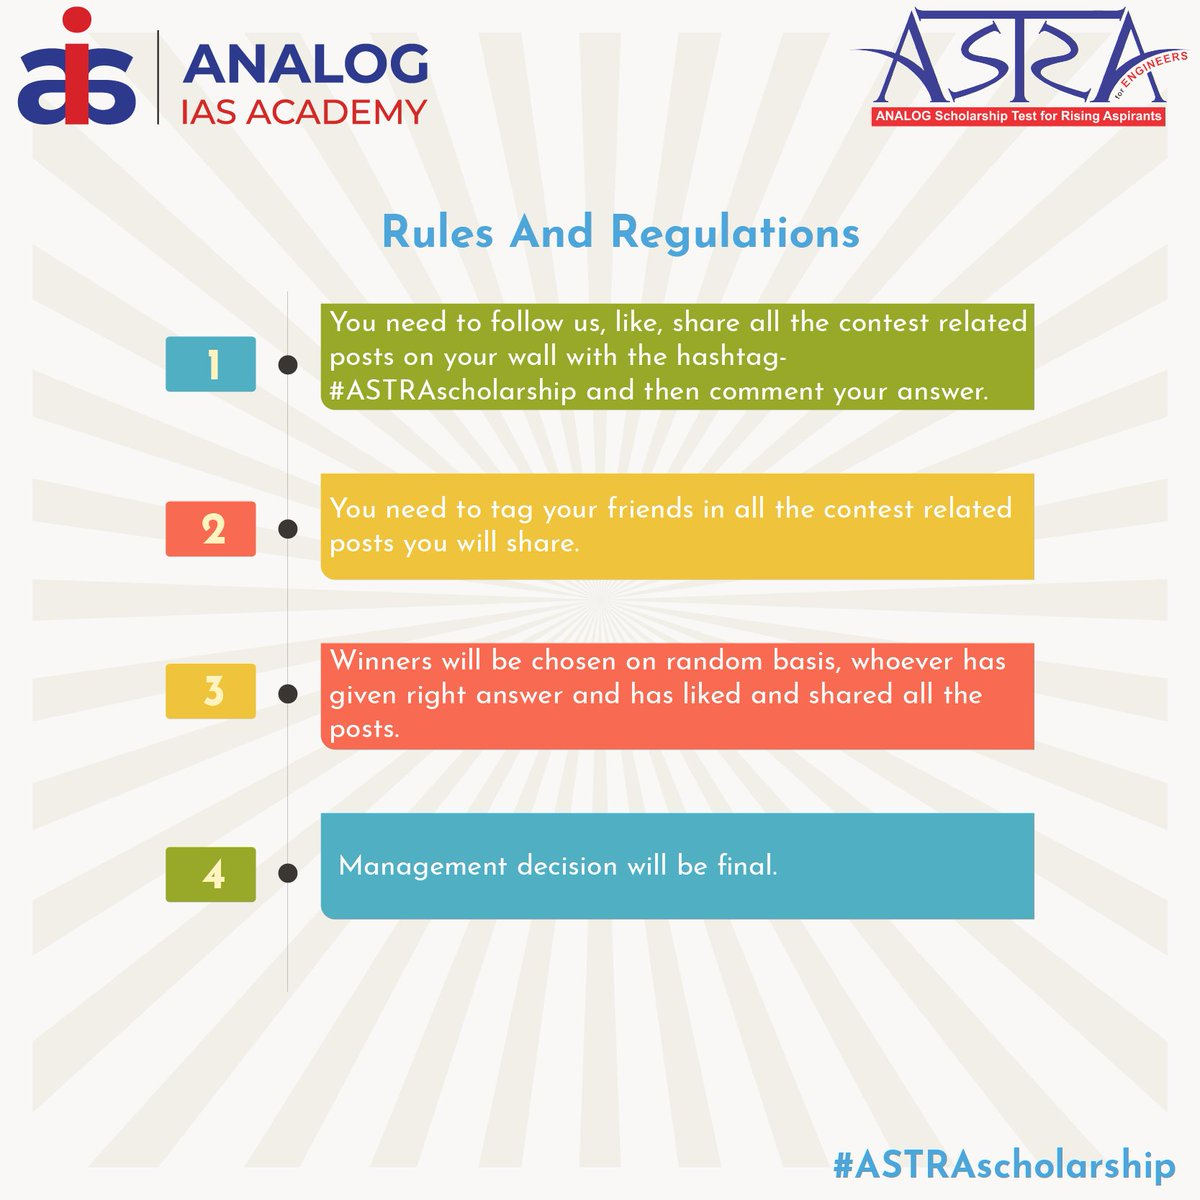 Join ASTRA Trivia #Contest & win Amazon Vouchers worth INR 3000. #Rules and regulations for ASTRA Trivia Contest are as follows.  Do follow us, RT and invite your friends to participate.  #ContestAlert #AnalogIAS #ASTRAscholarship